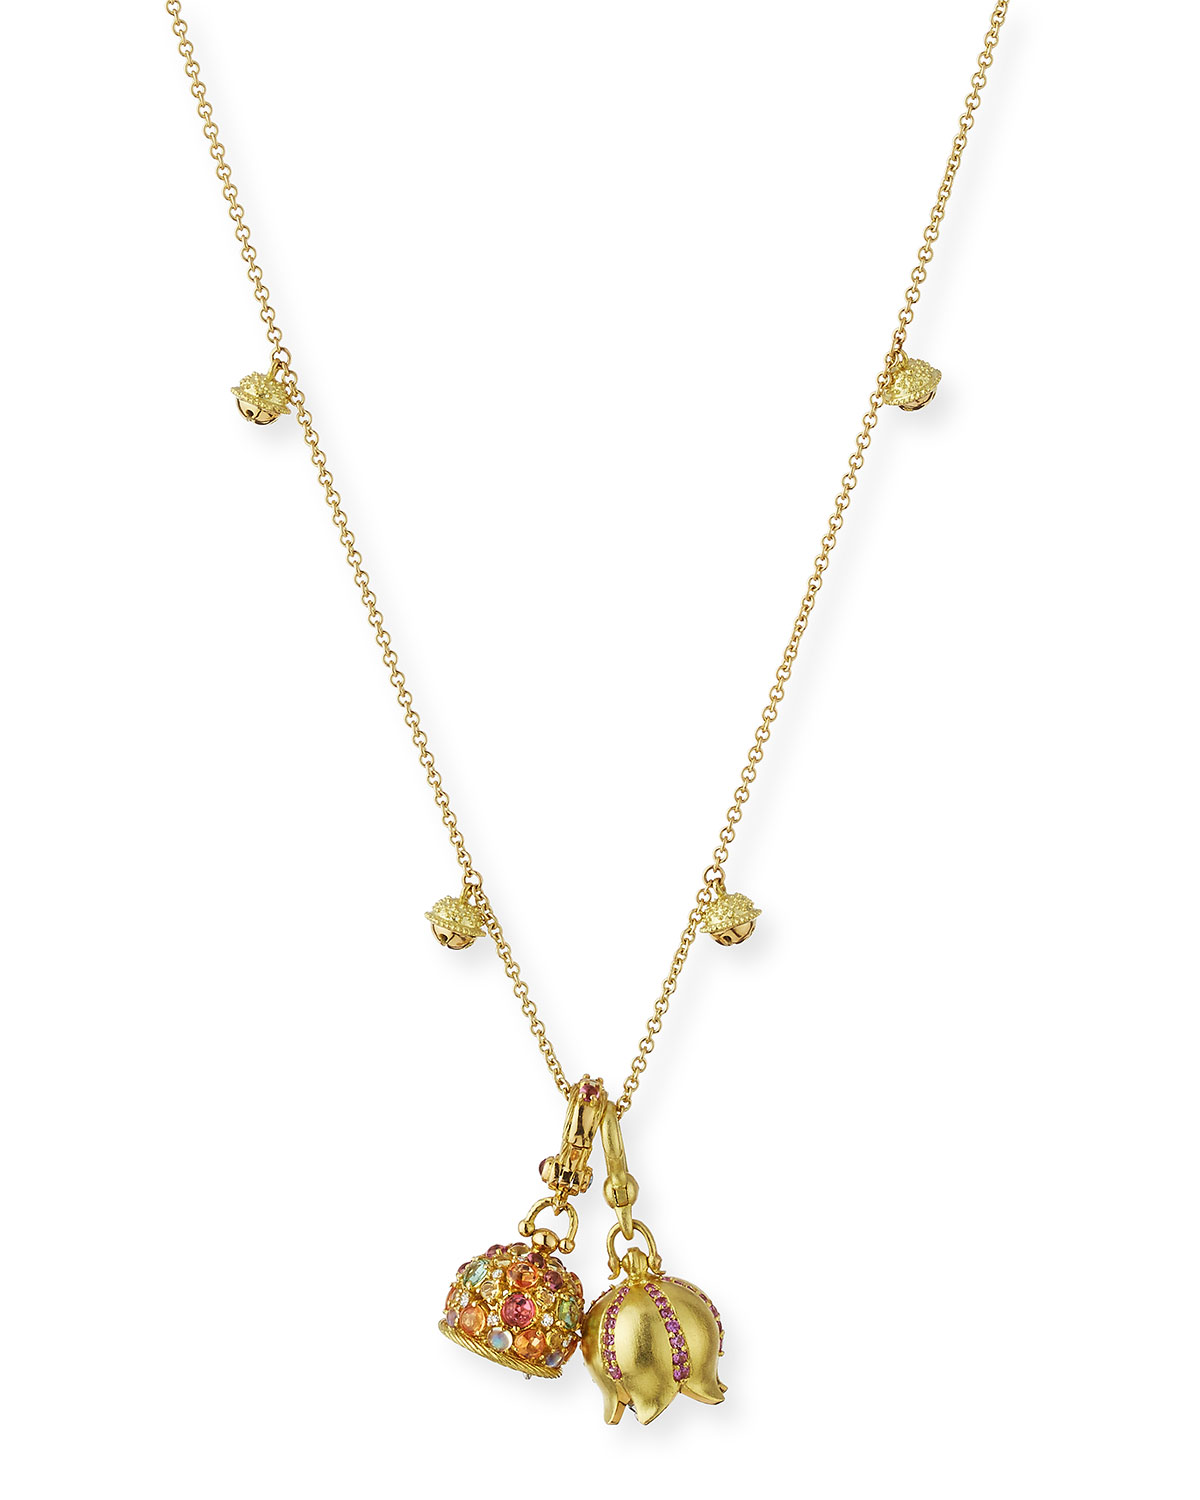 Paul Morelli 18k Gold Jingle Meditation Bell Necklace, 36L